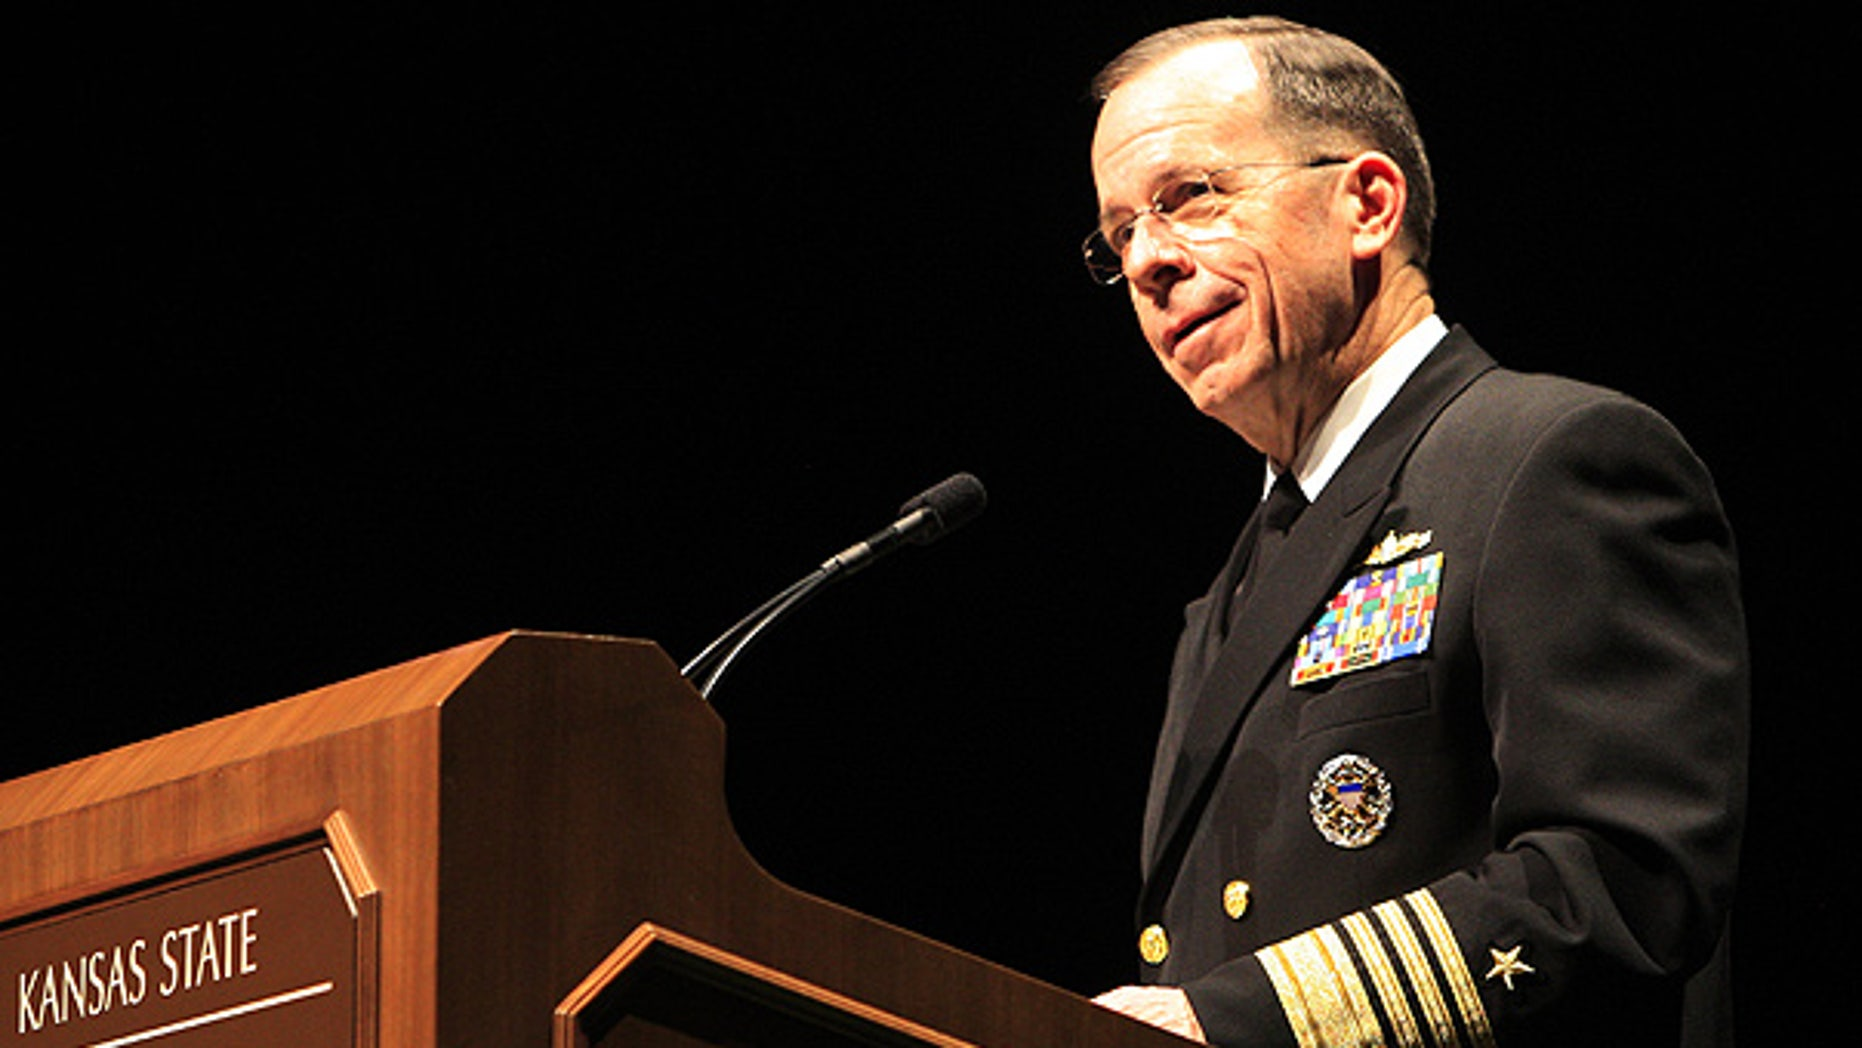 Mar. 3: Adm. Mike Mullen, chairman of the Joint Chiefs of Staff, speaks at Kansas State University in Manhattan, Kan.